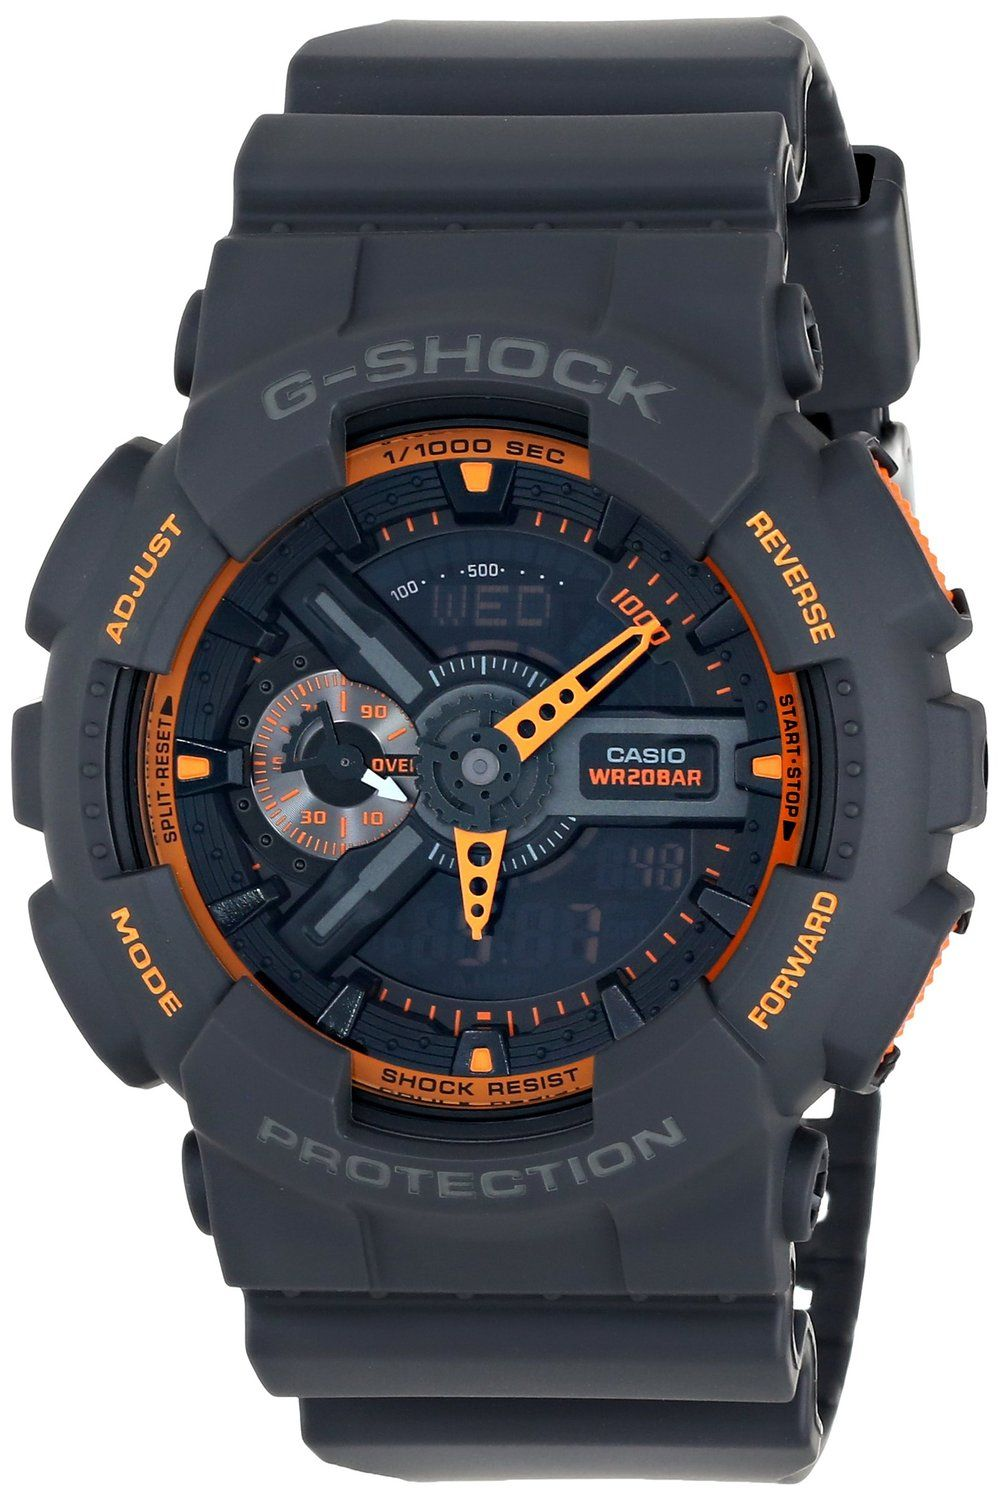 5329a82e066 Amazon.com  Casio Men s GA-110TS-1A4 G-Shock Analog-Digital Watch With Grey  Resin Band  Casio  Watches. Relogio ...